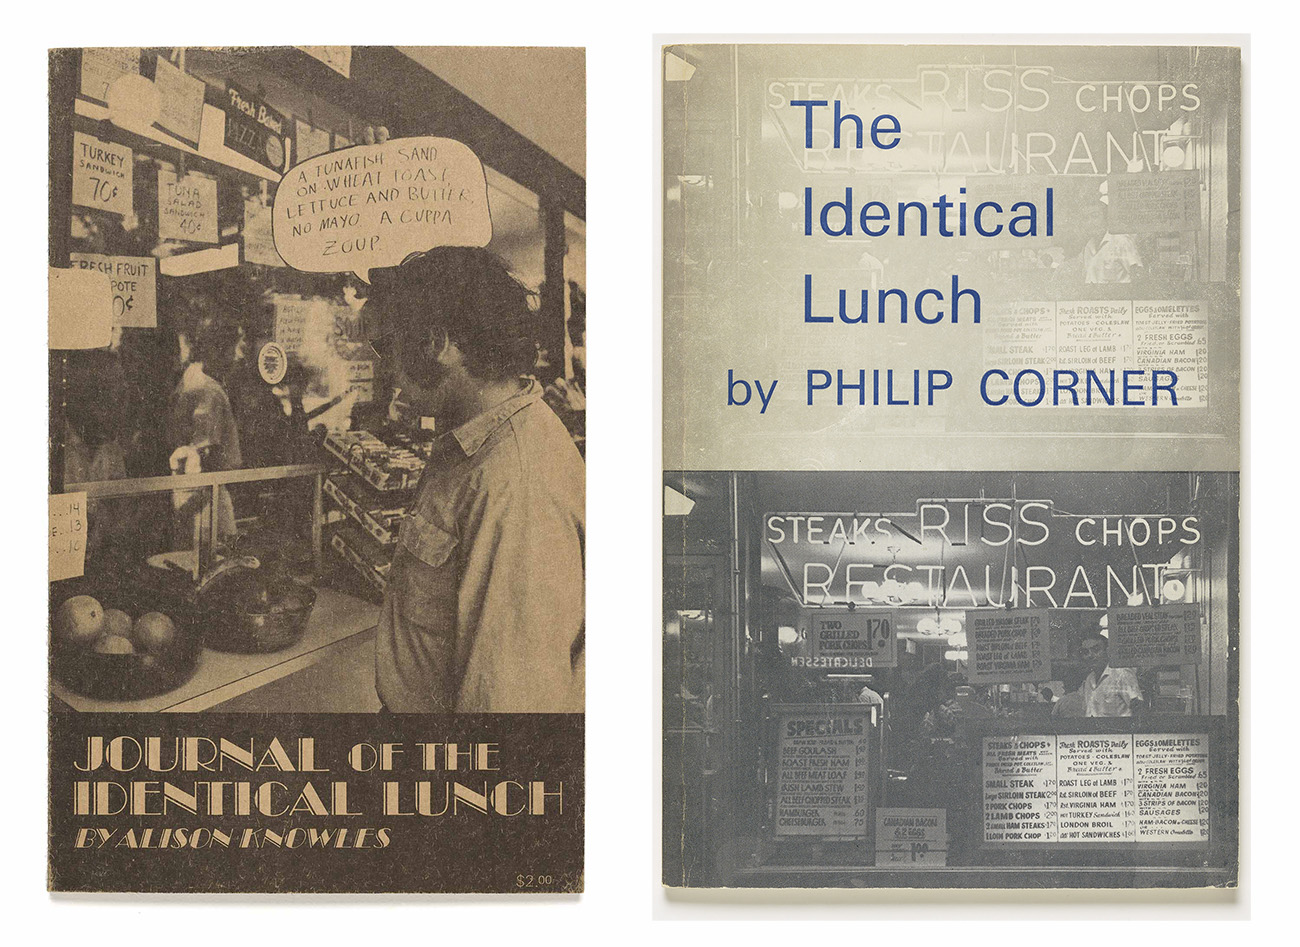 The journal of the Identical Lunch